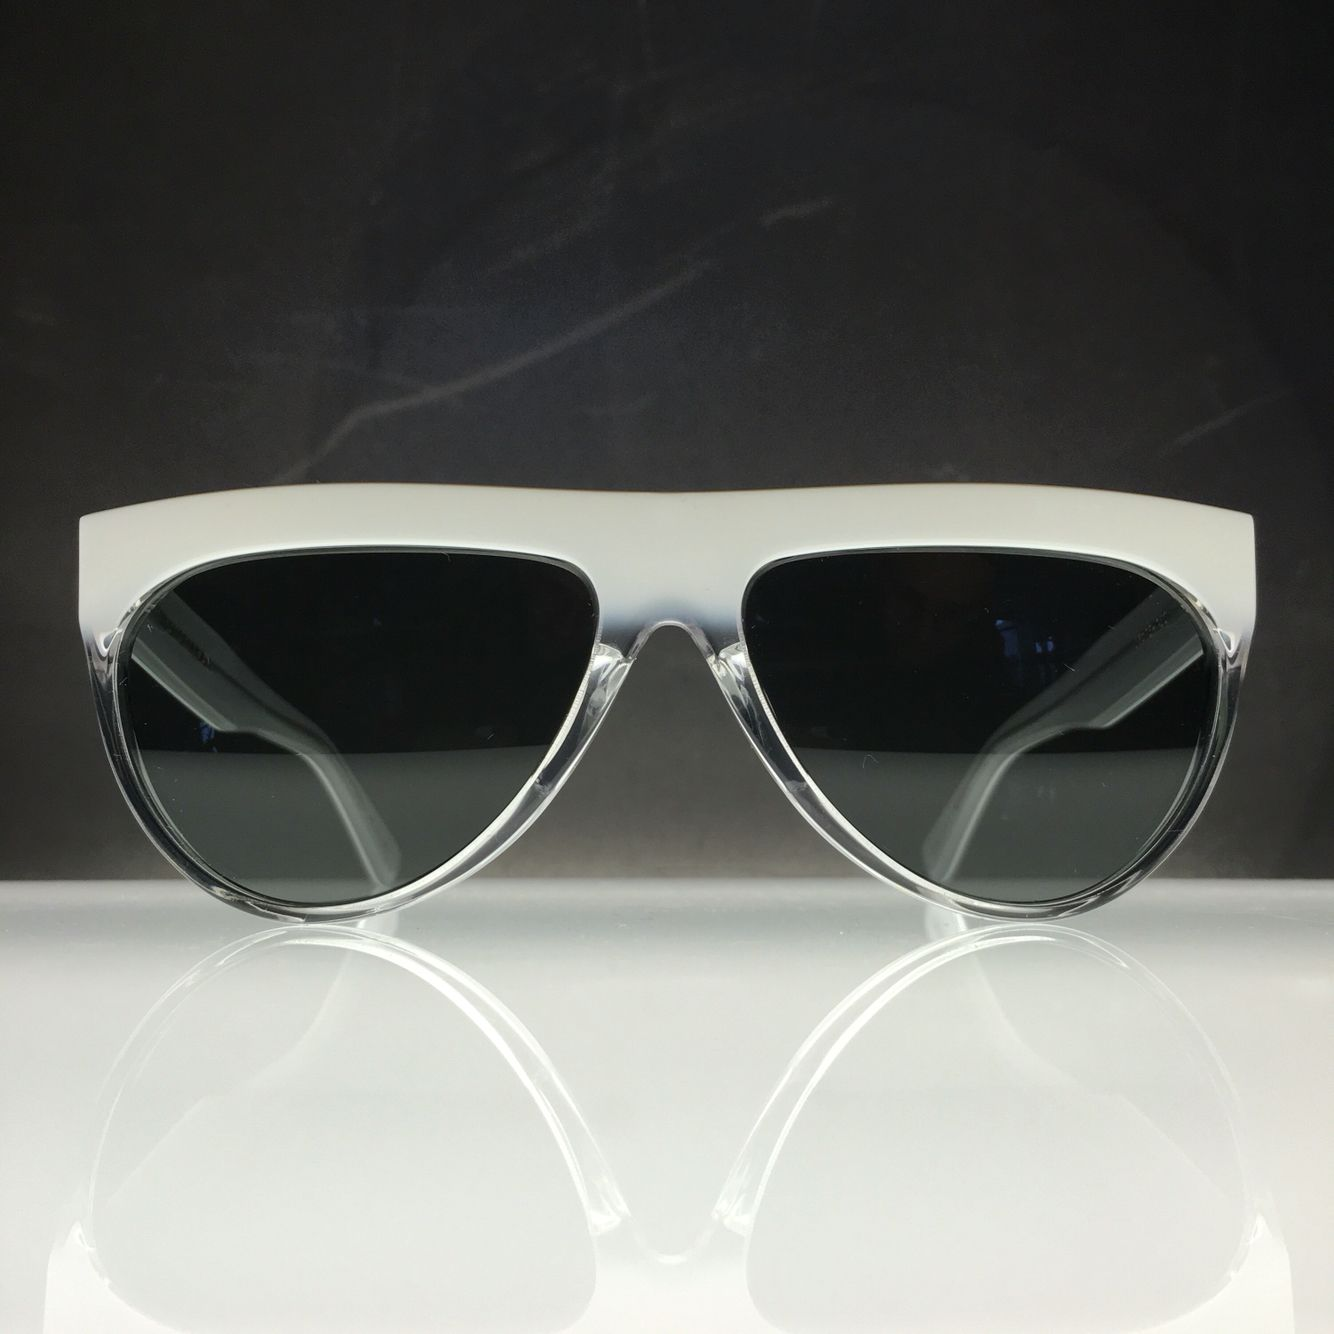 The Limited 002 From Kaneko Optical Striking Design Handmade